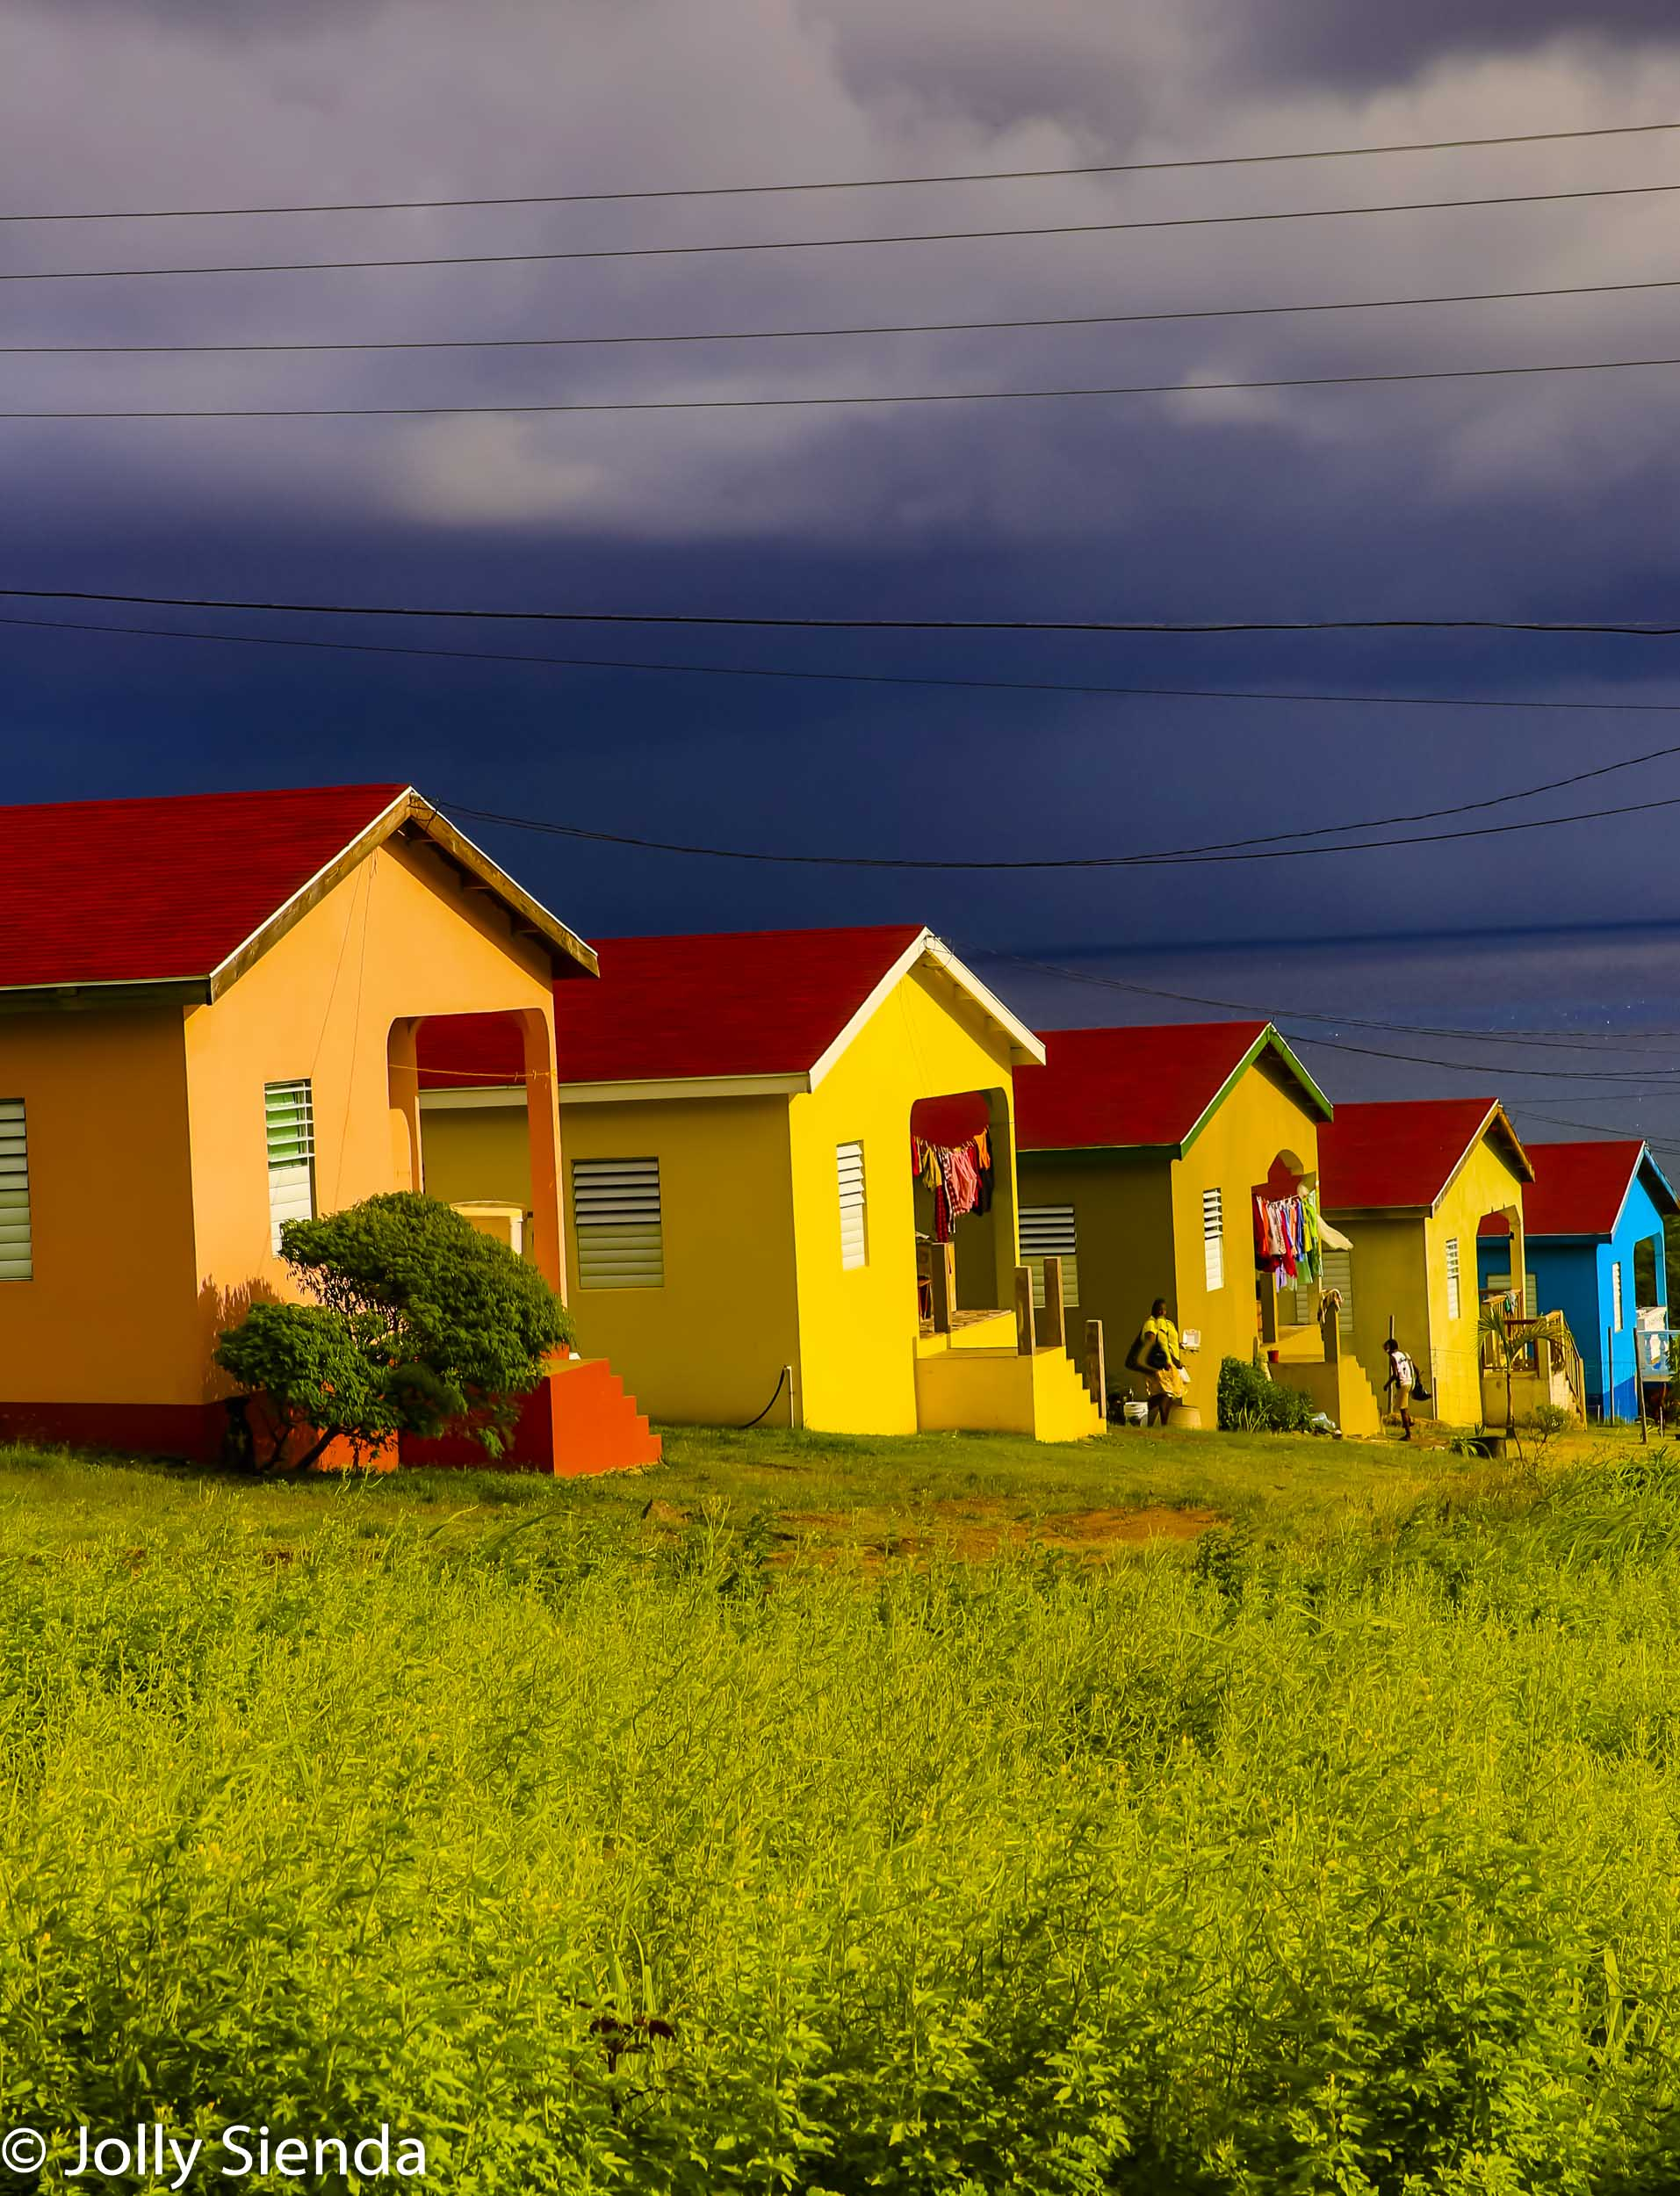 Colorful, Caribbean row houses, hanging laundry, meadow, people